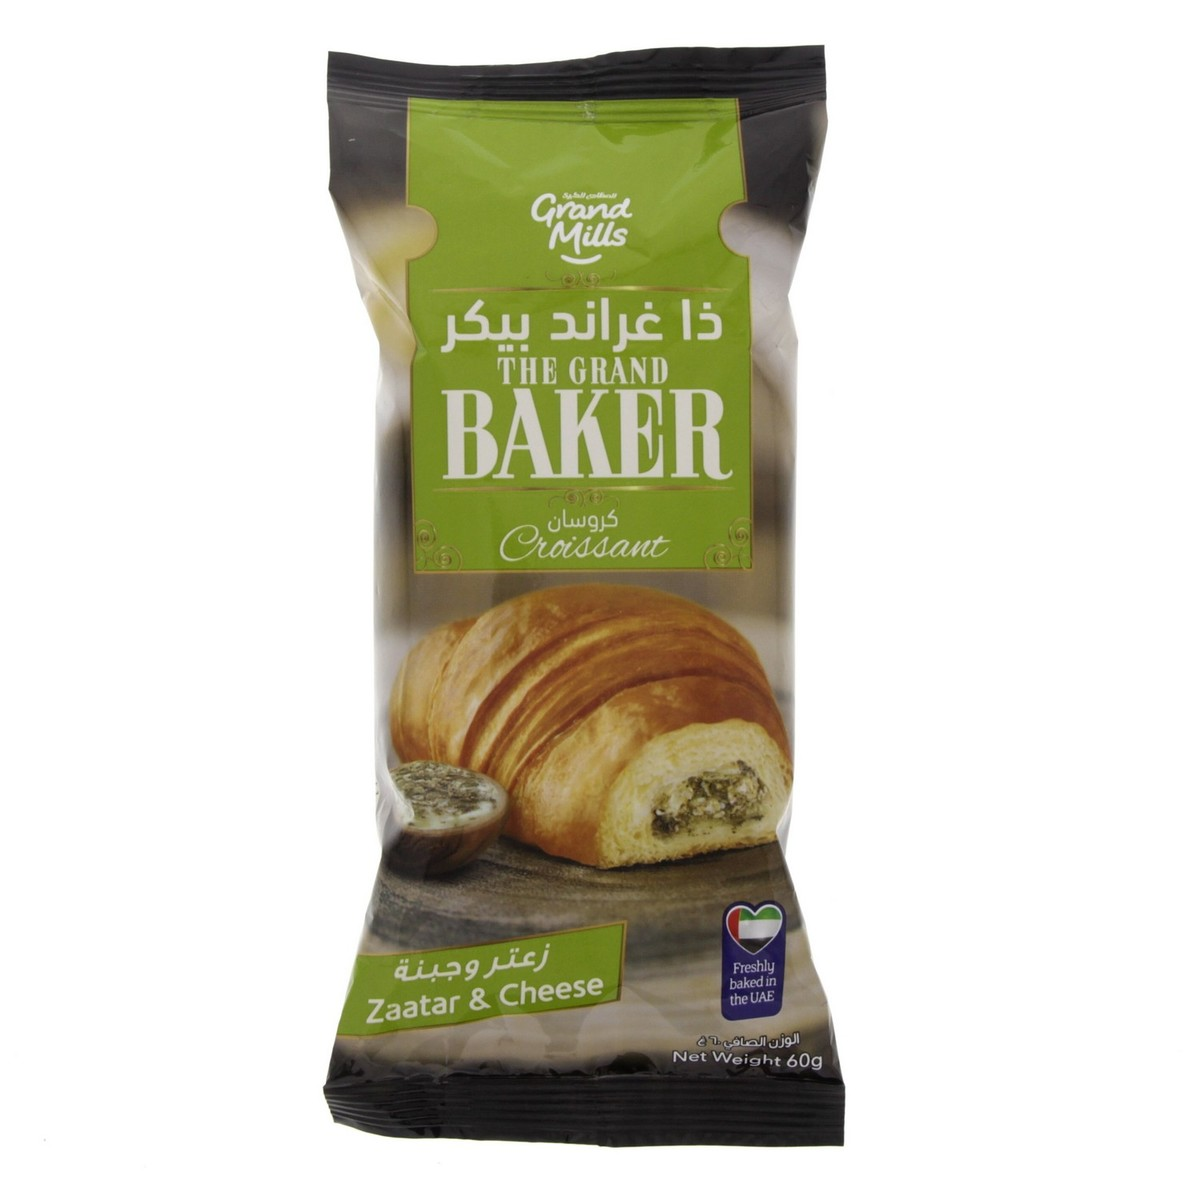 Buy Grand Mills Croissant Zaatar & Cheese 60g - Brought In